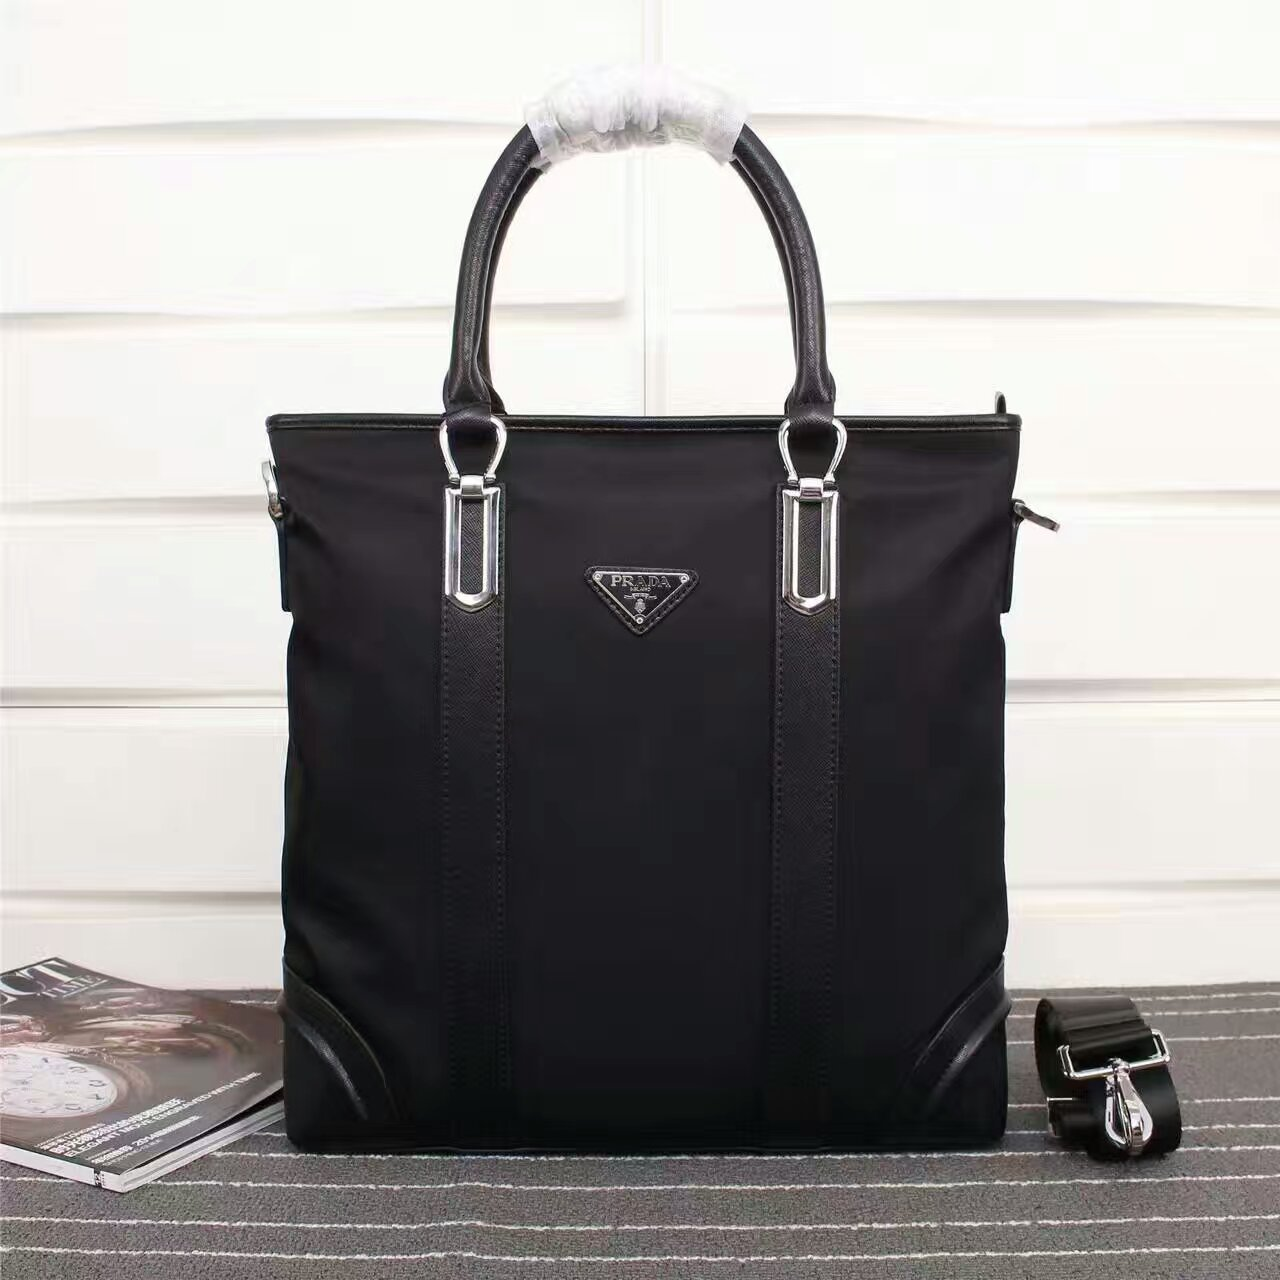 Prada Men's Canvas Tote Bag 0017 Black